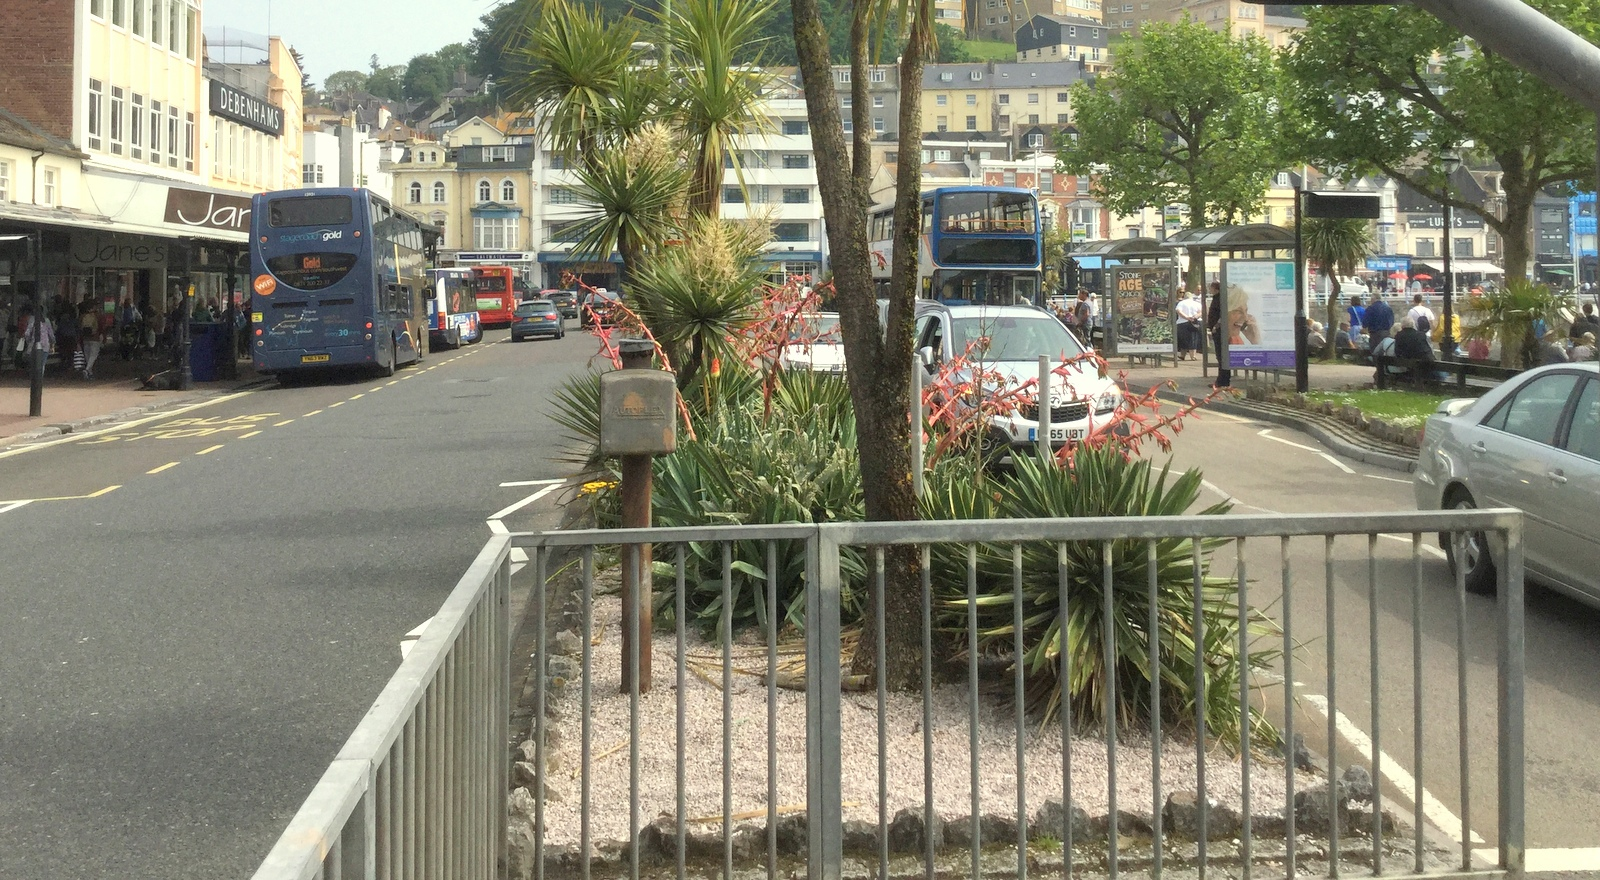 Torquay harbour, the main hub for bus services across The English Riviera and south Devon.